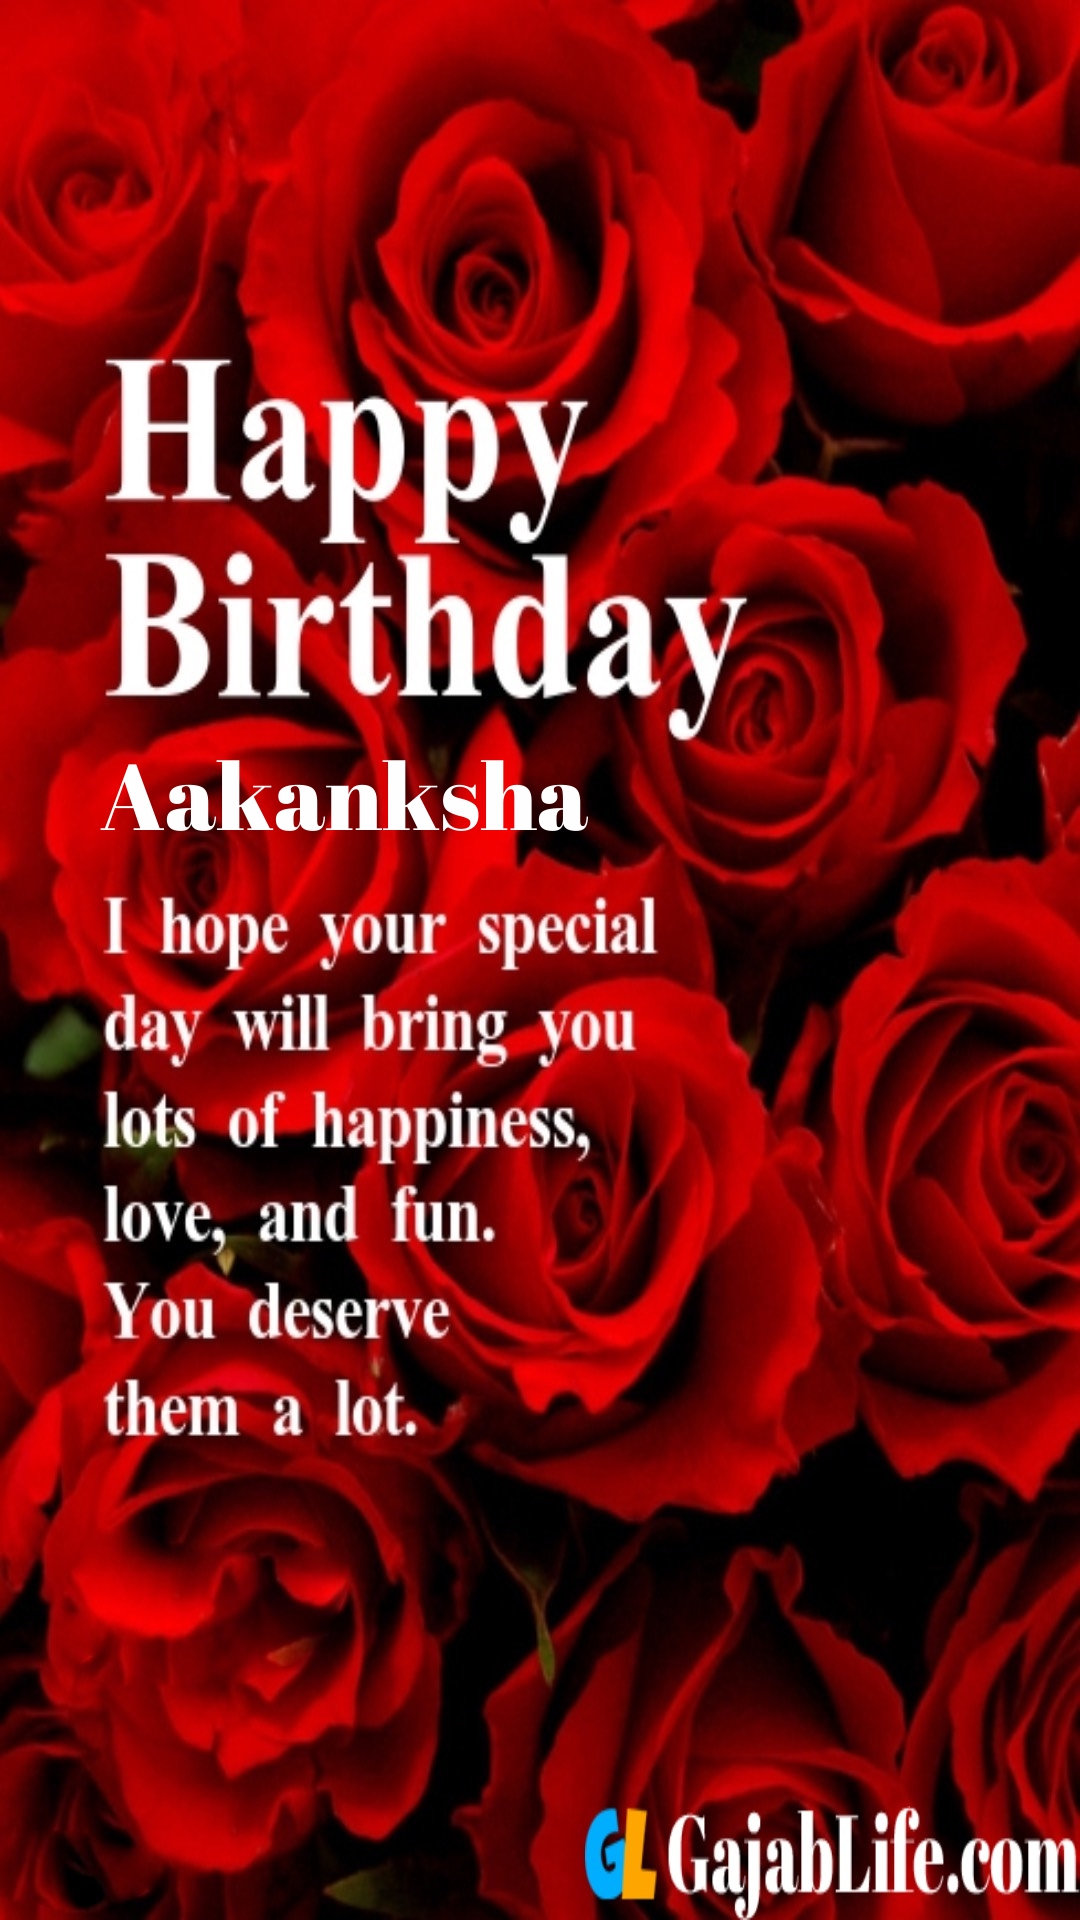 Aakanksha birthday greeting card with rose & love